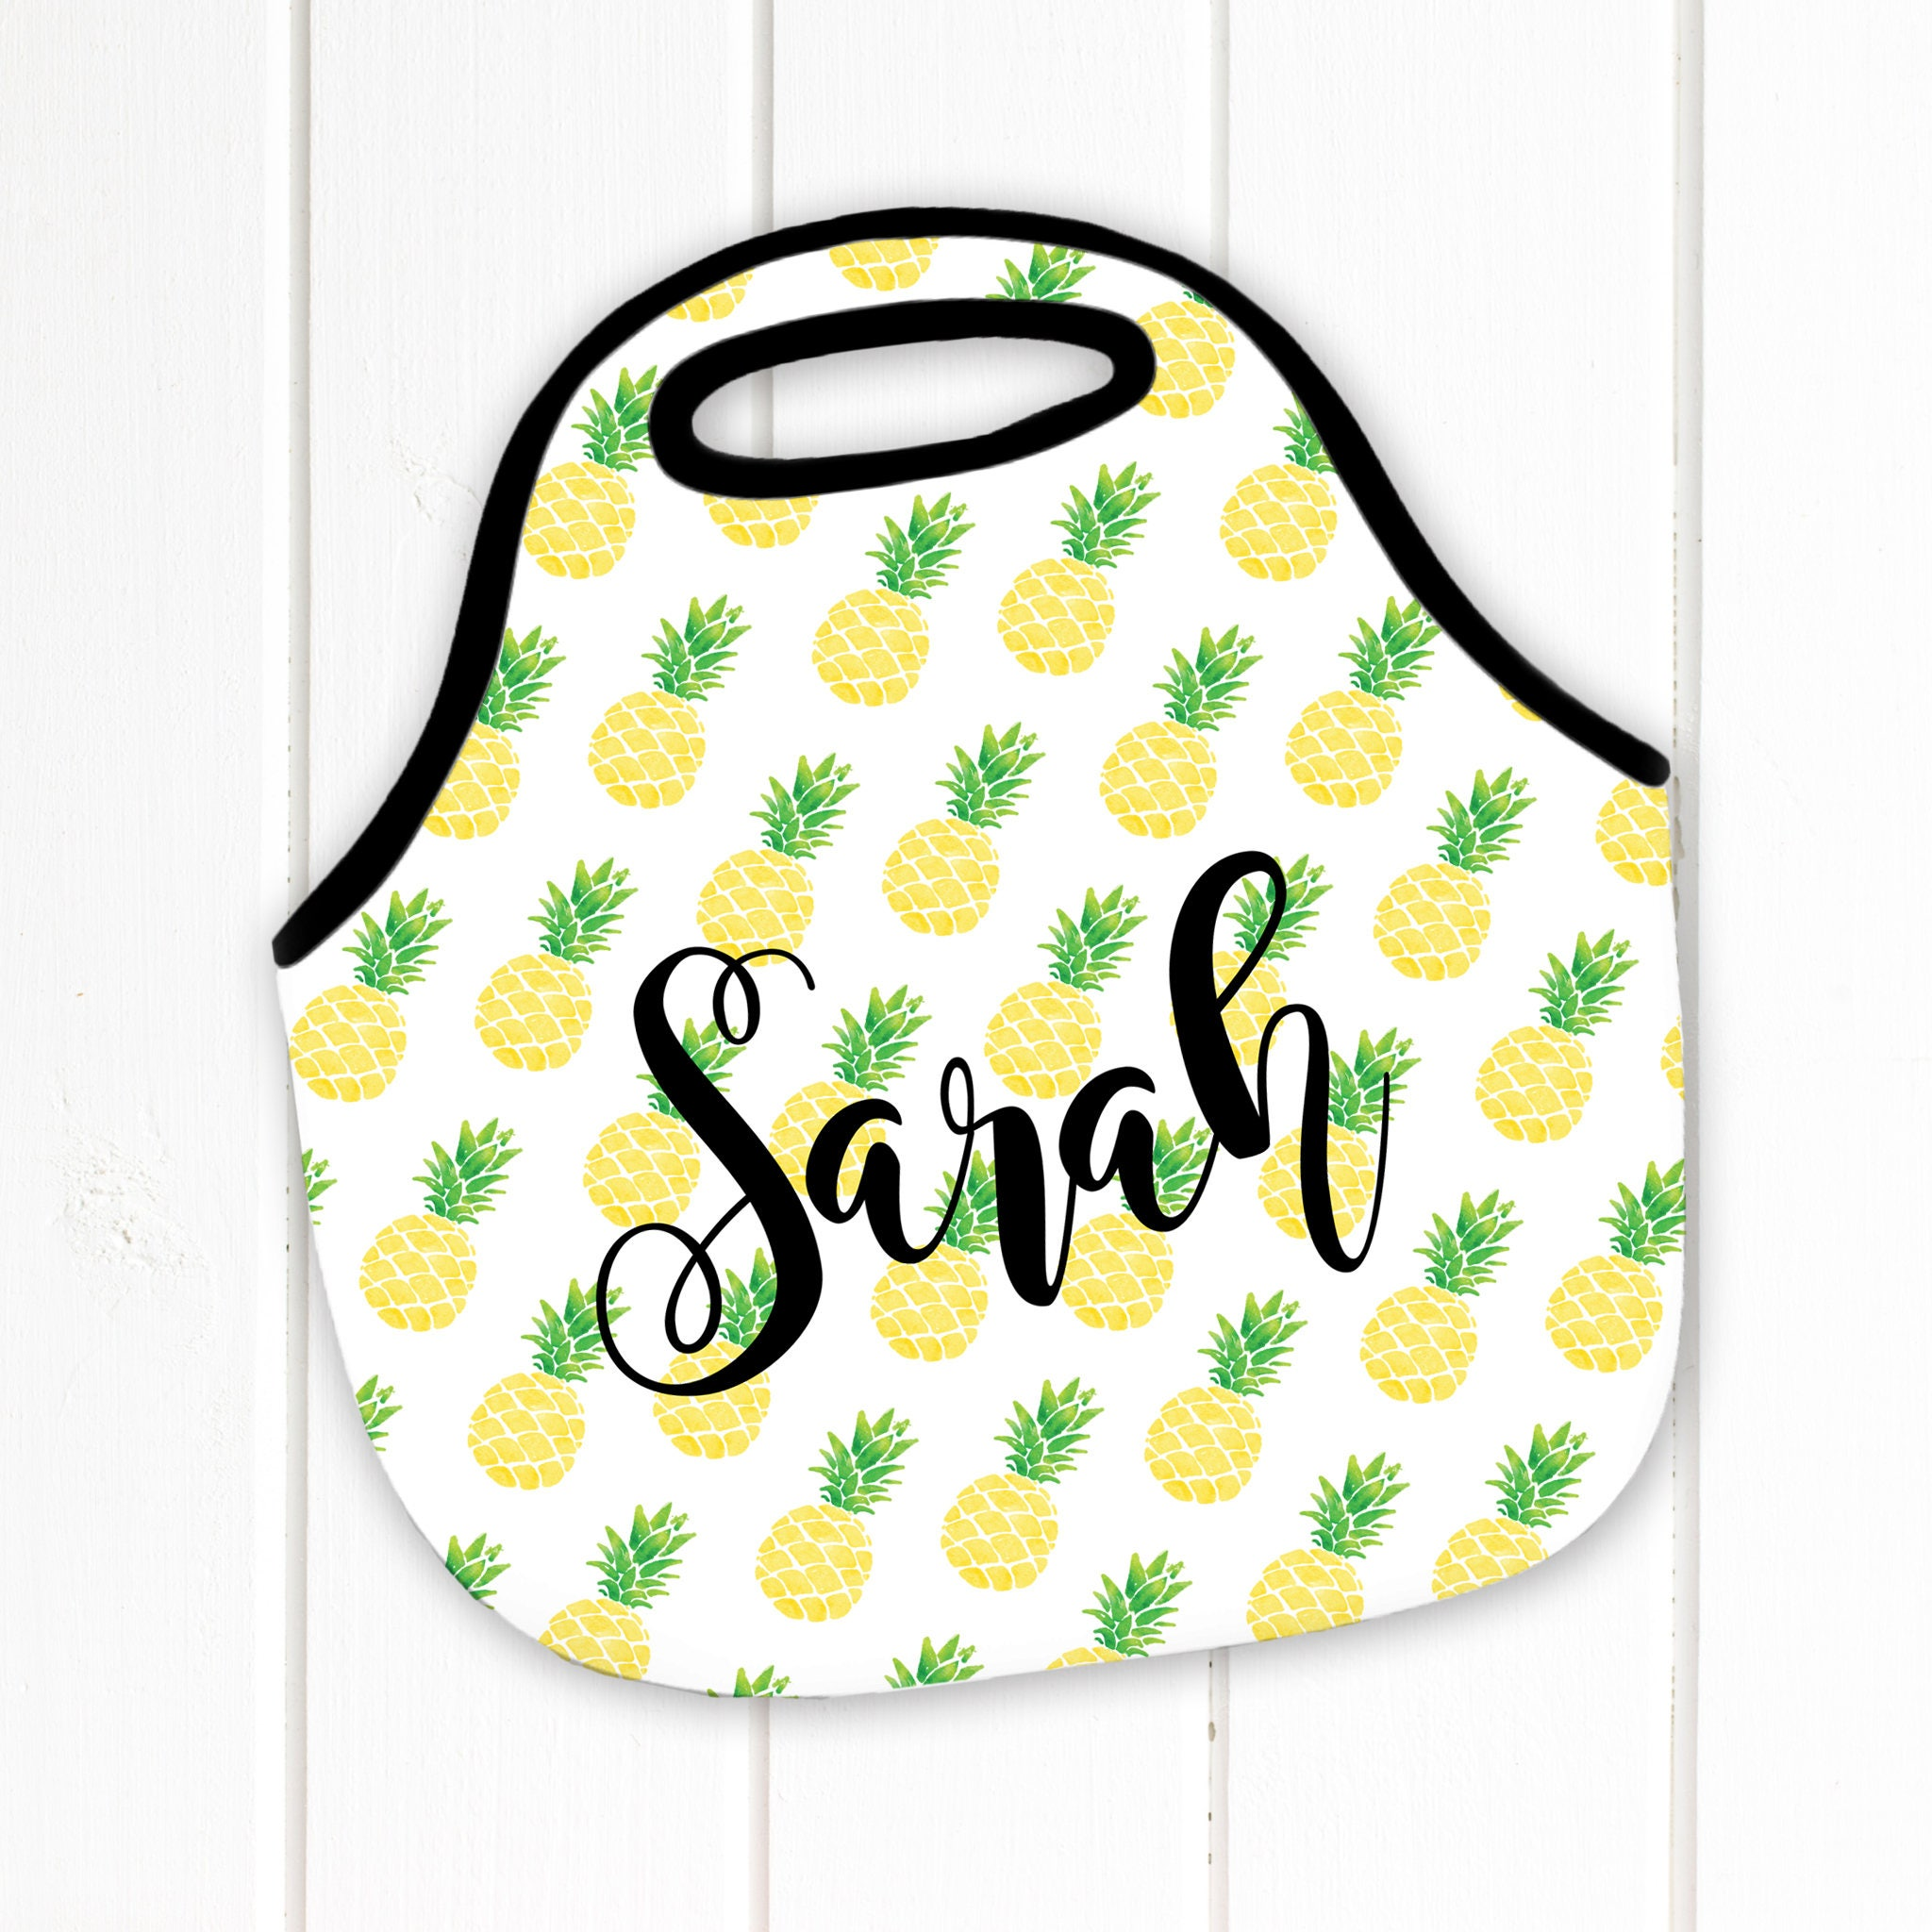 eec7188e7a96 Personalized Lunch Tote, Pineapple, Neoprene Lunch Tote, Lunch Bag, Lunch  Box - Monogram Lunch Tote-Lunch Bag, Monogrammed lunch tote